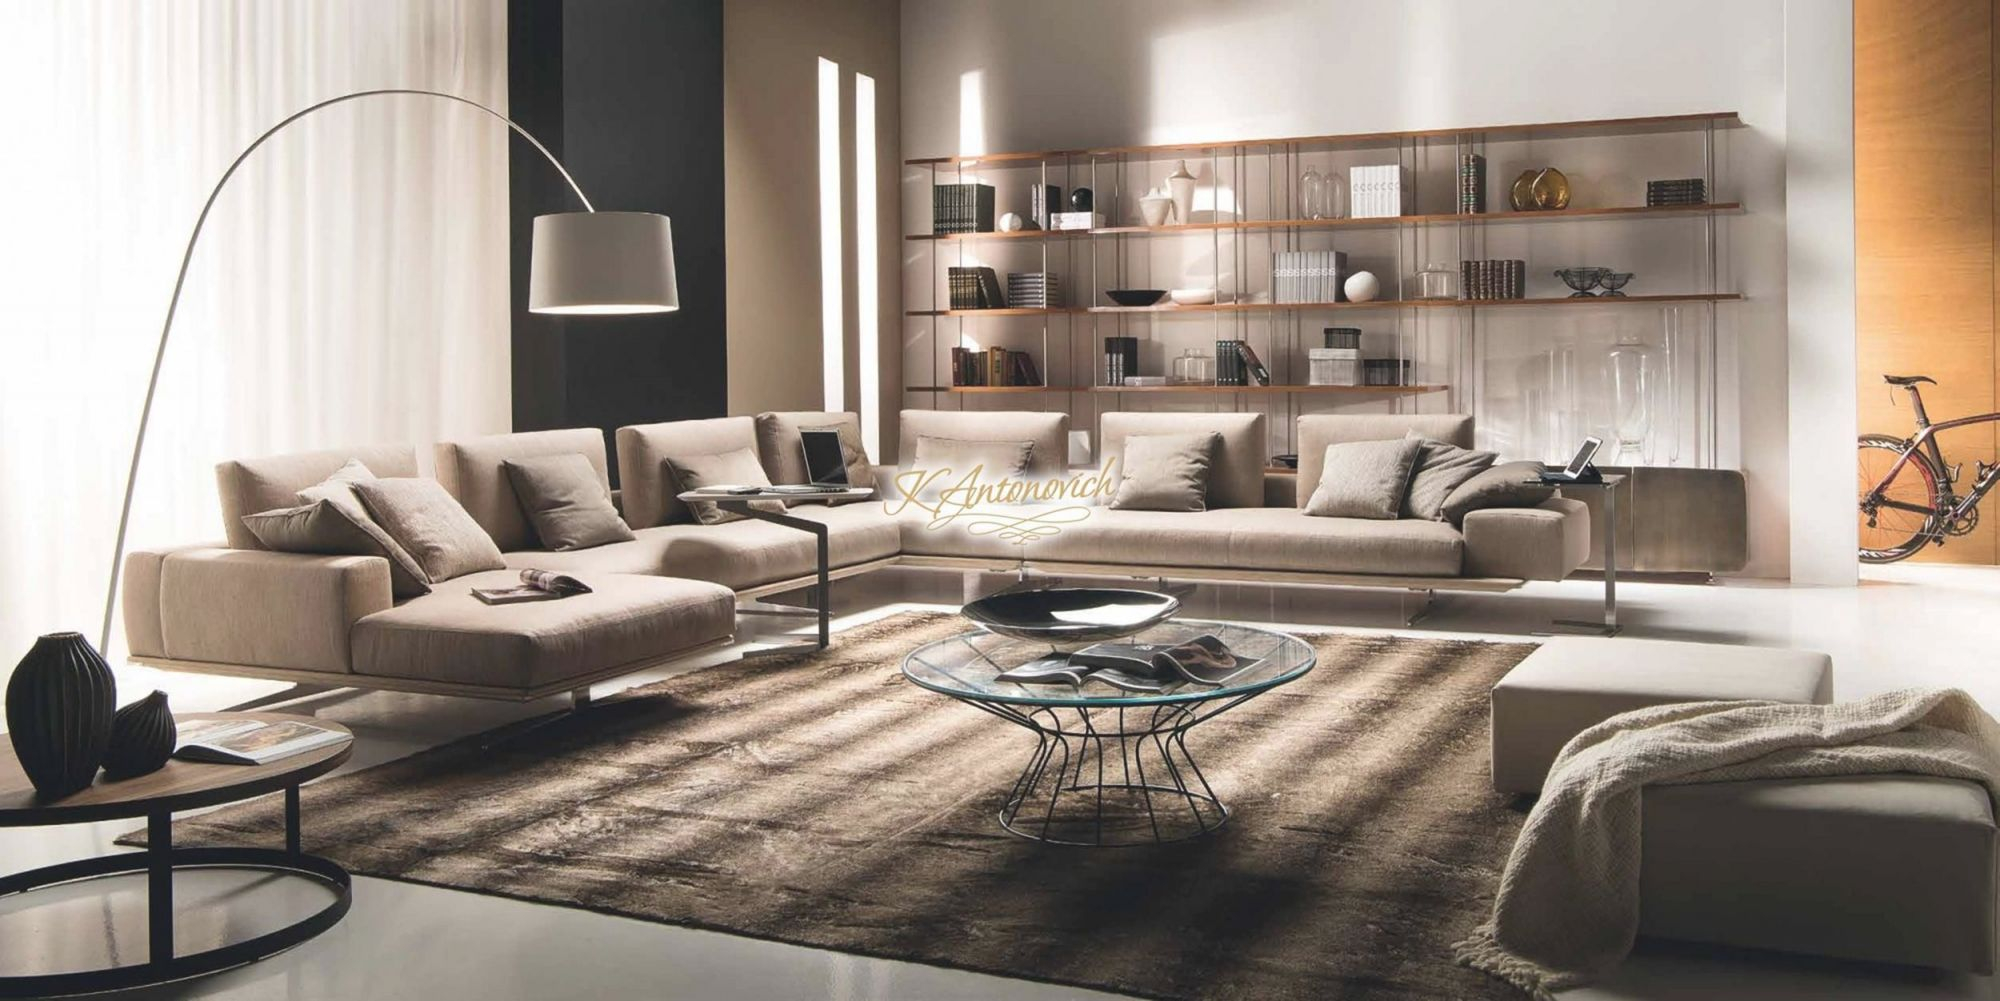 New Italian Living Room Furniture - Awesome Decors